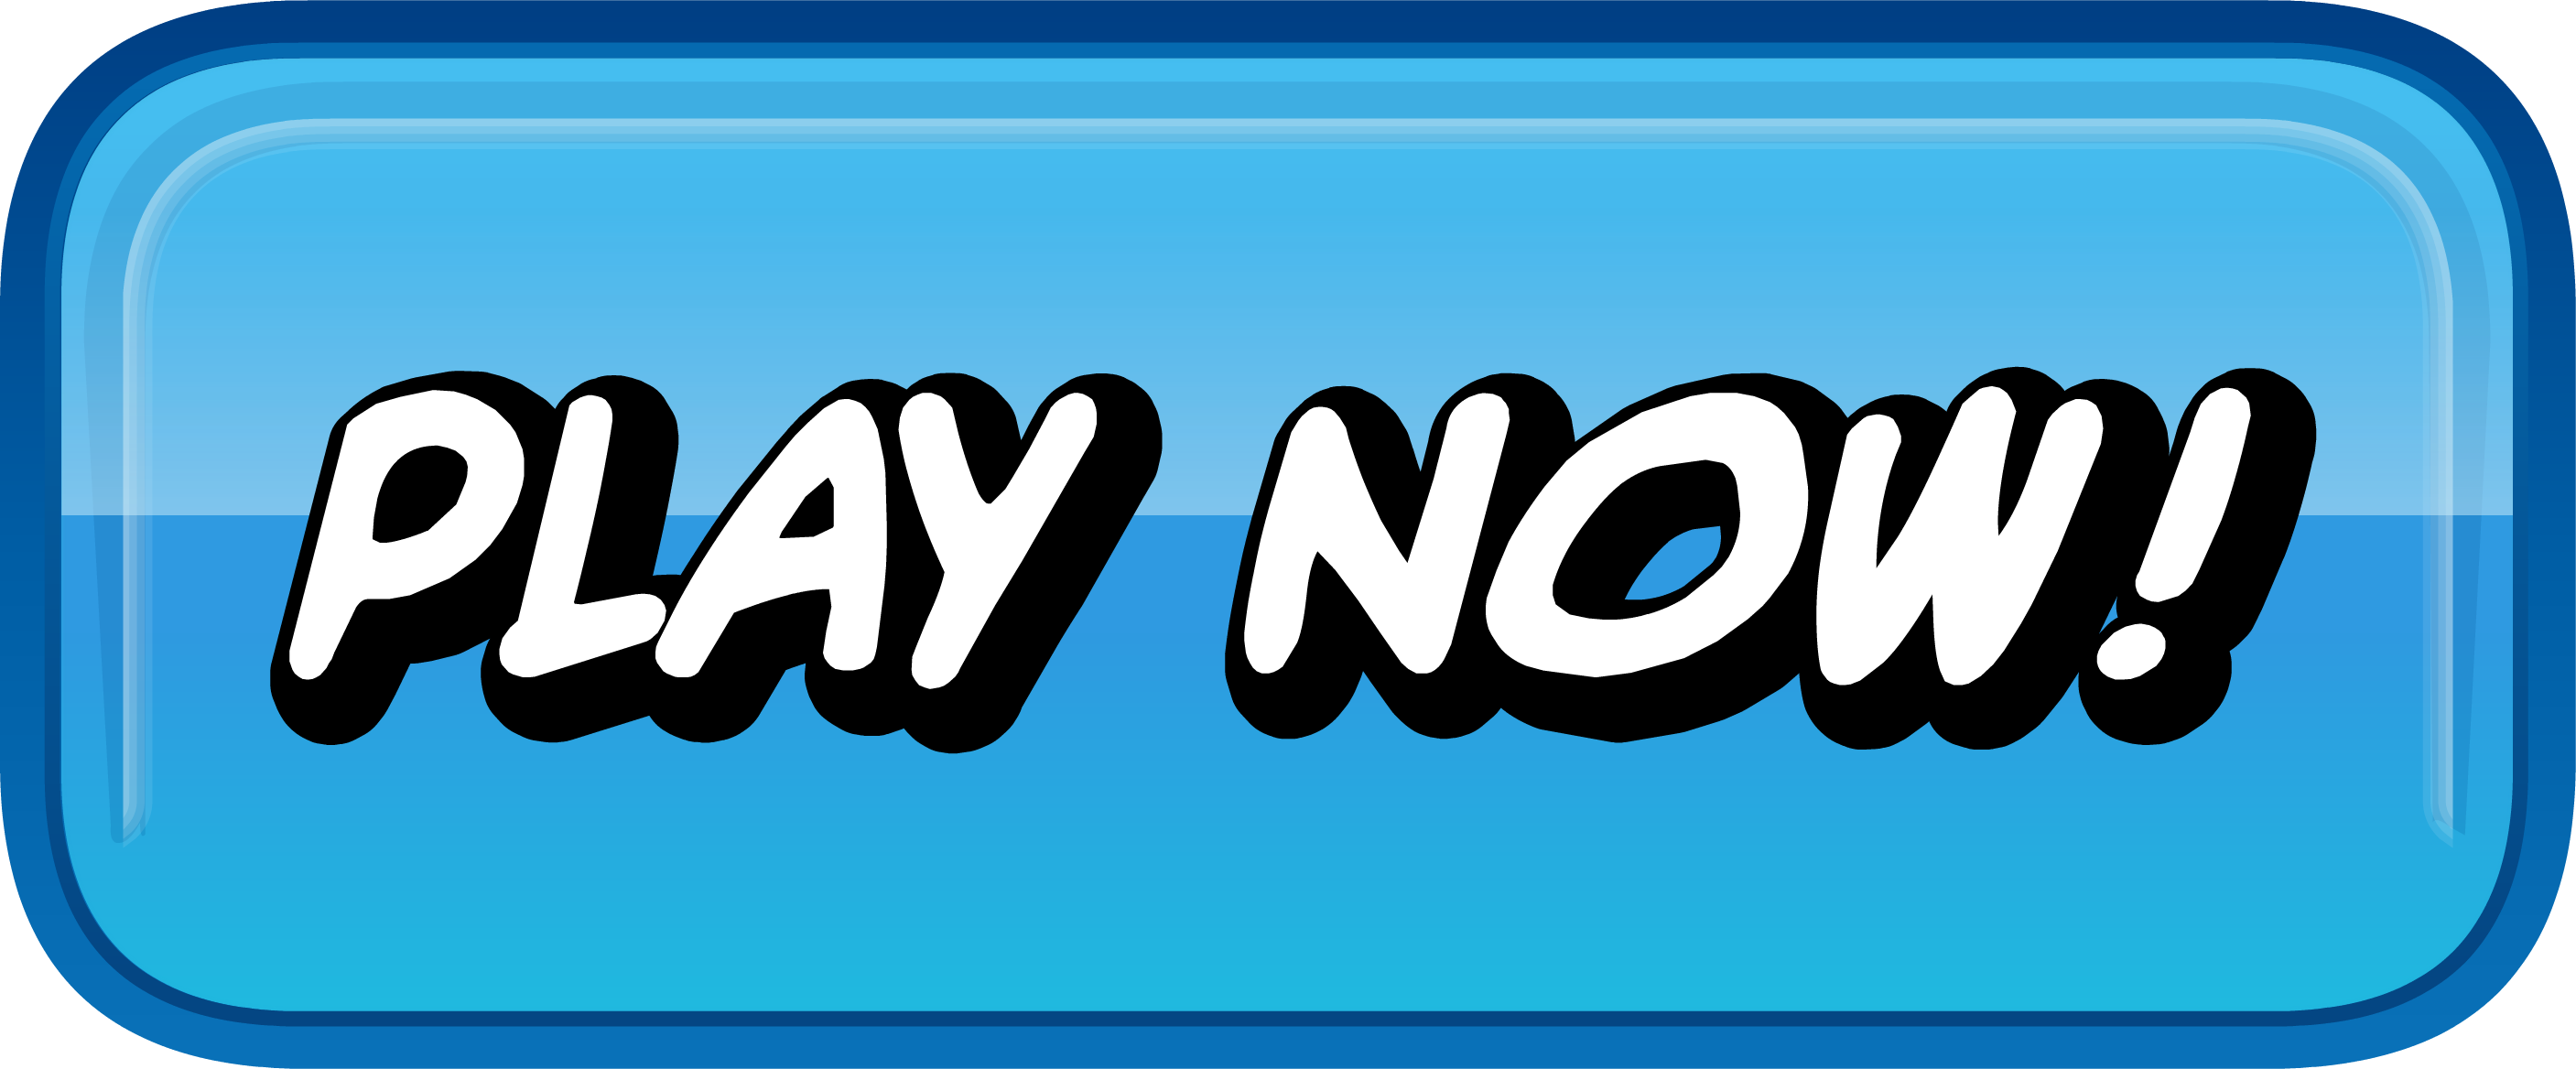 Ultra Hot deluxe Online Slot | PLAY NOW | StarGames Casino